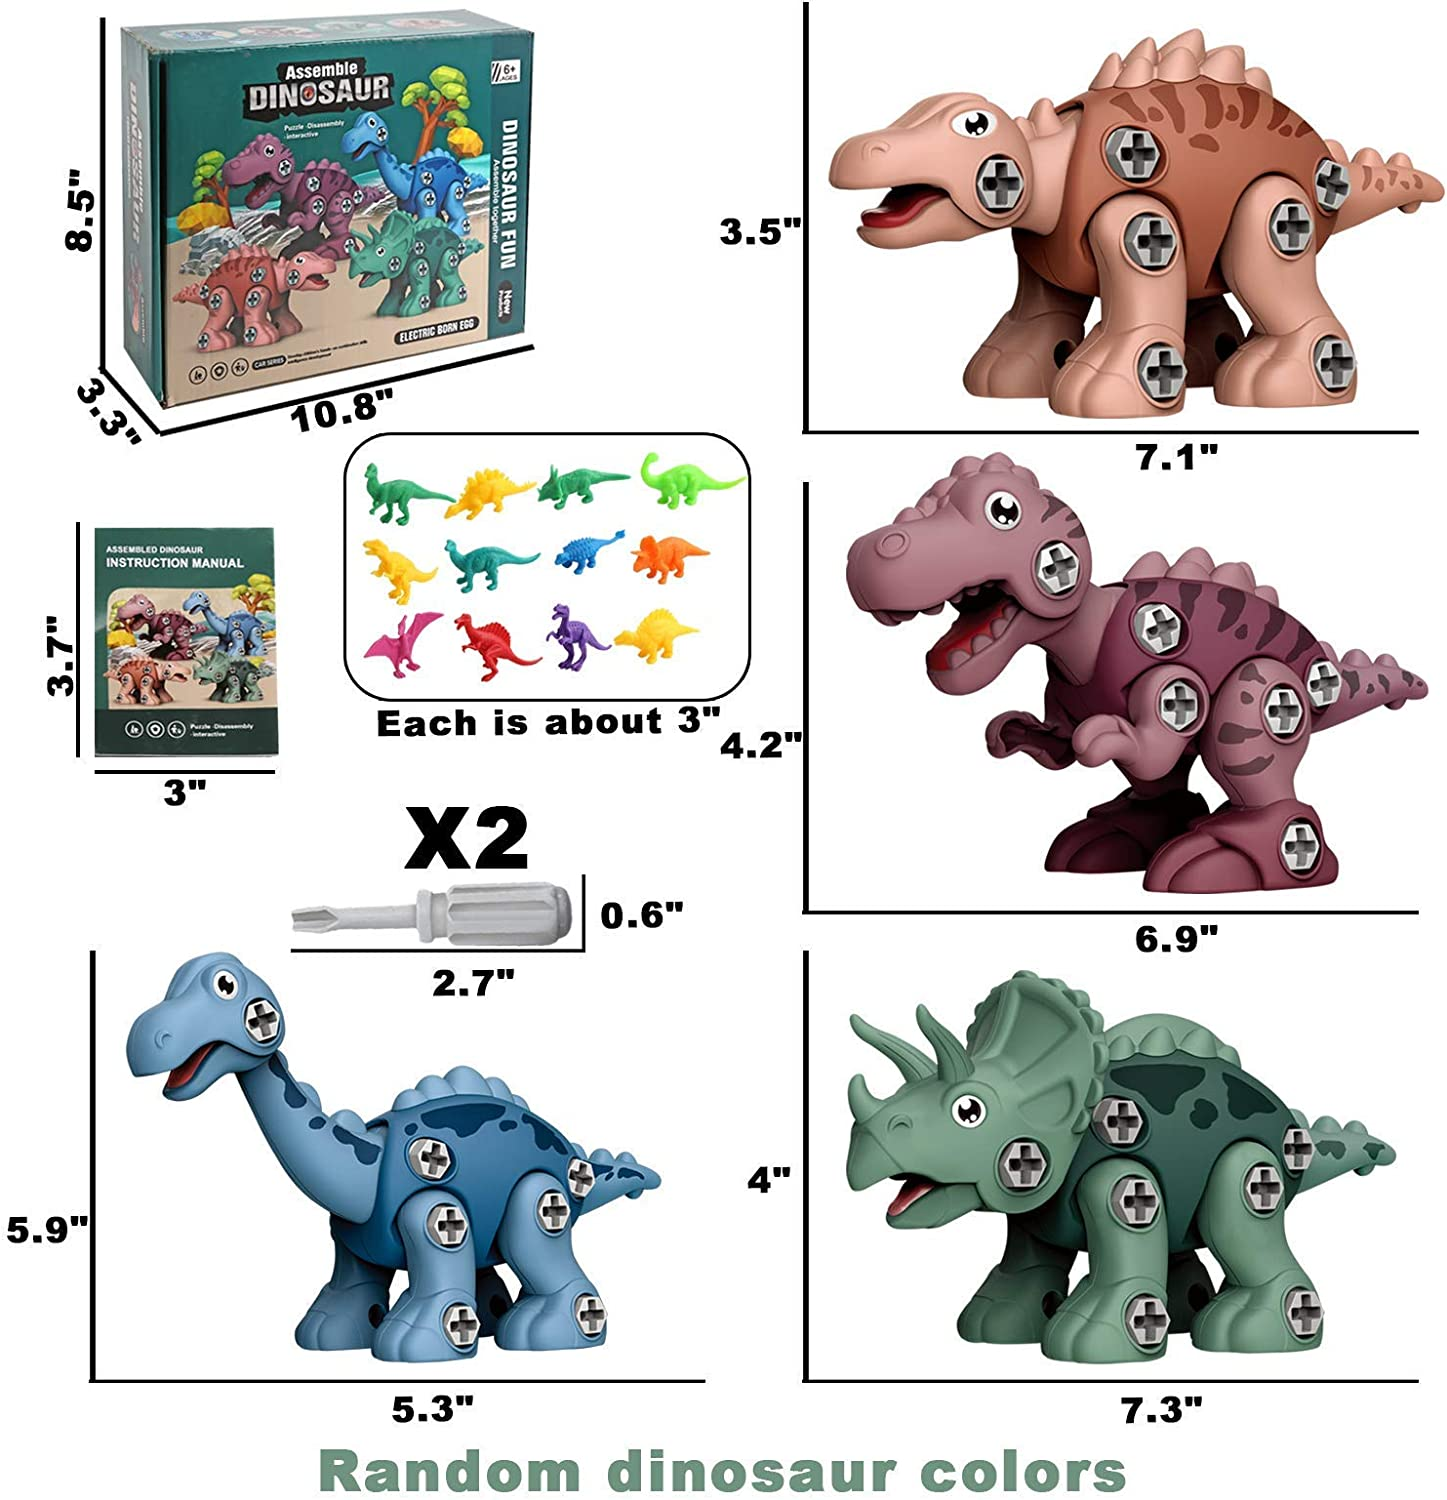 Dino Play Mat Building Construction Play Kit w// 16 Dinosaur Figures Educational STEM Toys for 3 Year Old Boys Dinosaur Take Apart Toys for Boys Dinosaur Toys Kids Gift Girls /& Boys Age 3 4 5 6 7